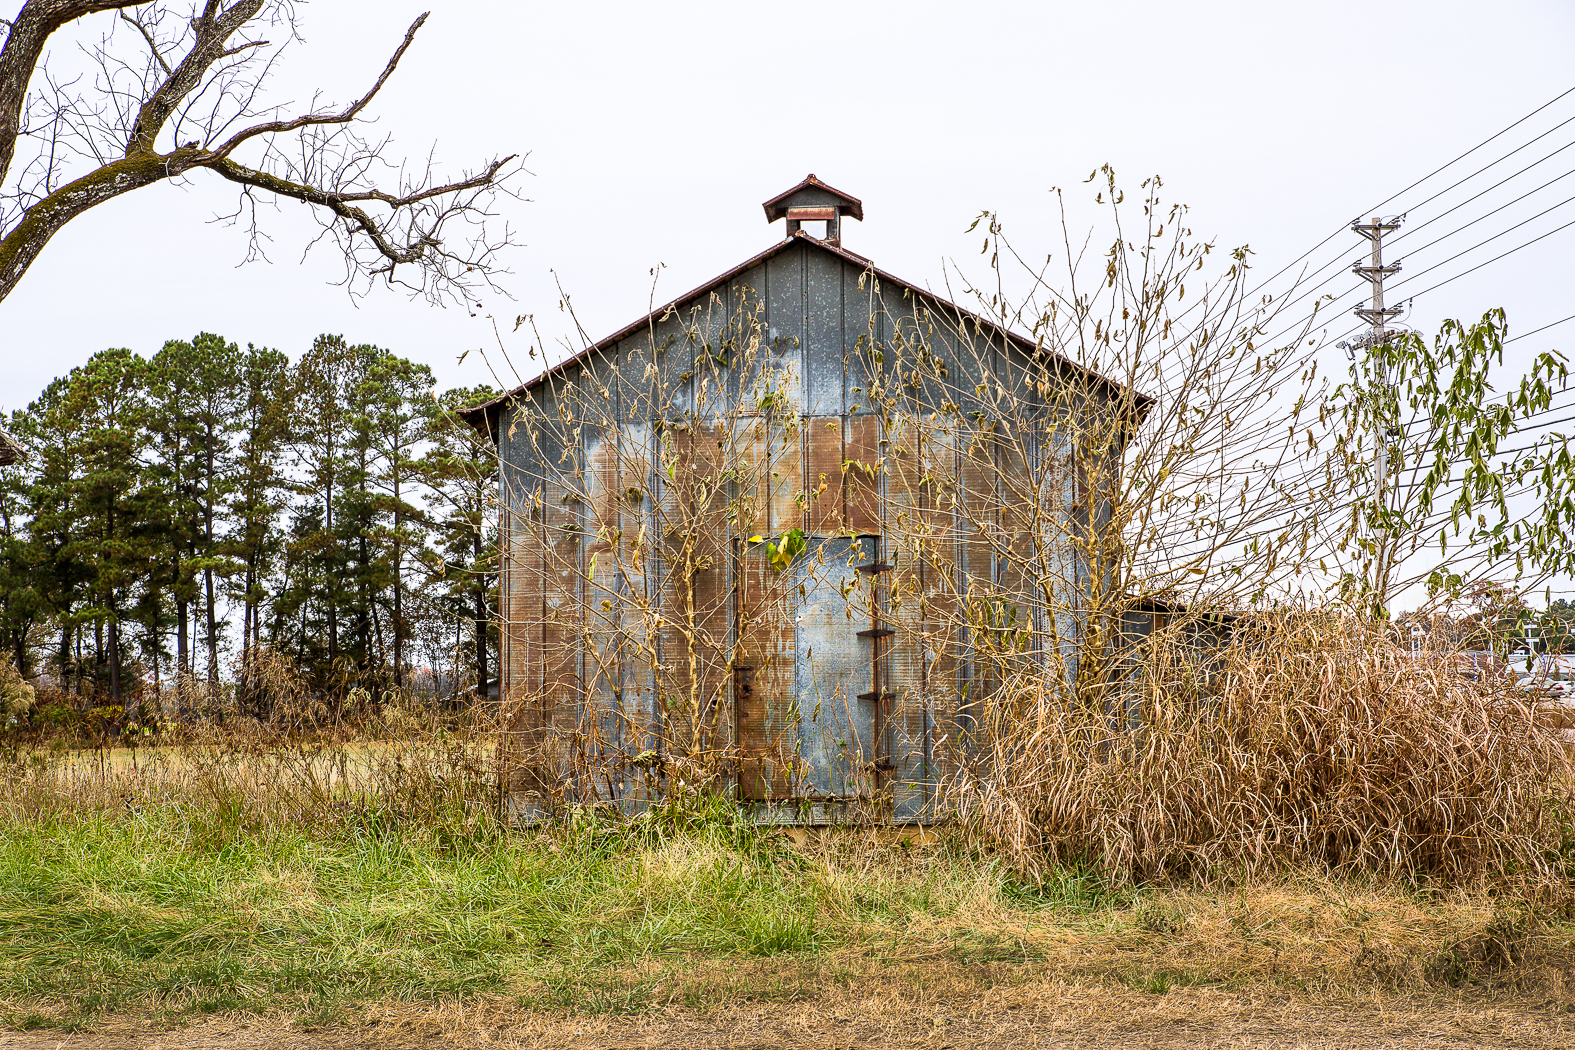 Gray Shed, Wilson, NC 2014